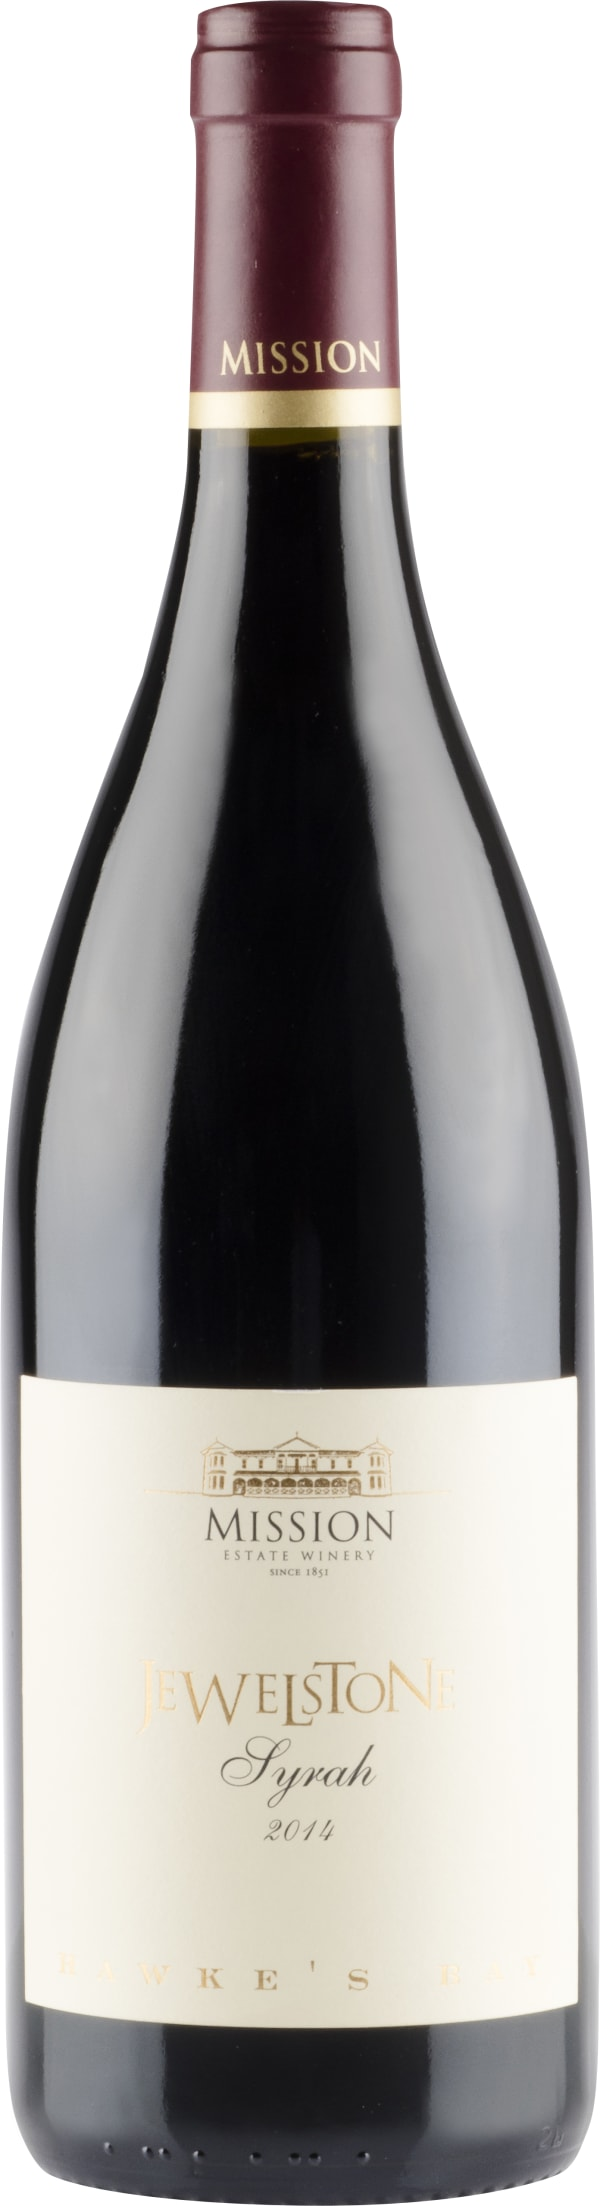 Mission Jewelstone Syrah 2014